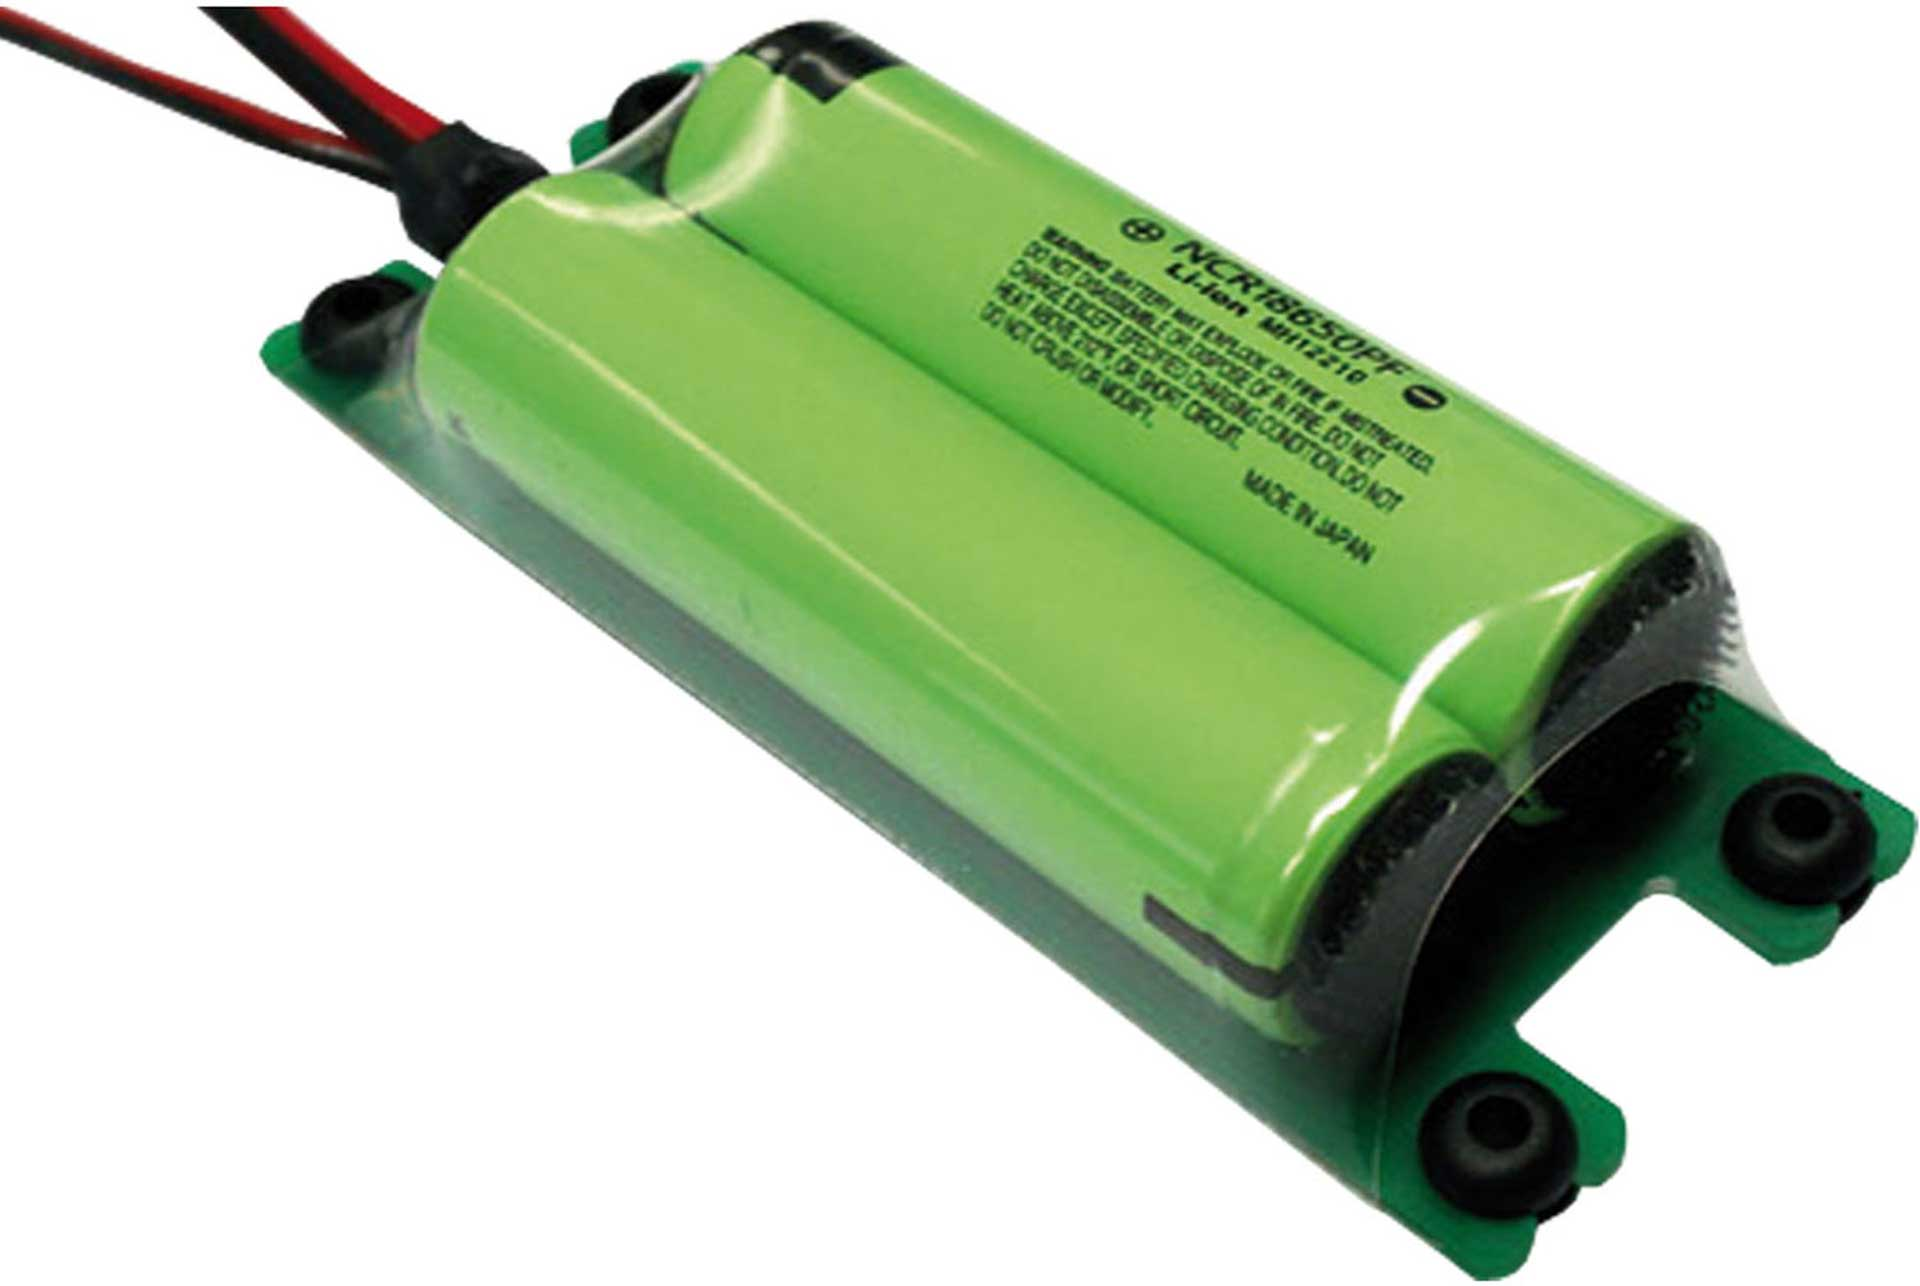 EMCOTEC LION BATTERY PACK 2900 MAH 2S 7,2V COMP ACT WITH MPX PLUG/JR CHARGING JACK NCR18650PF